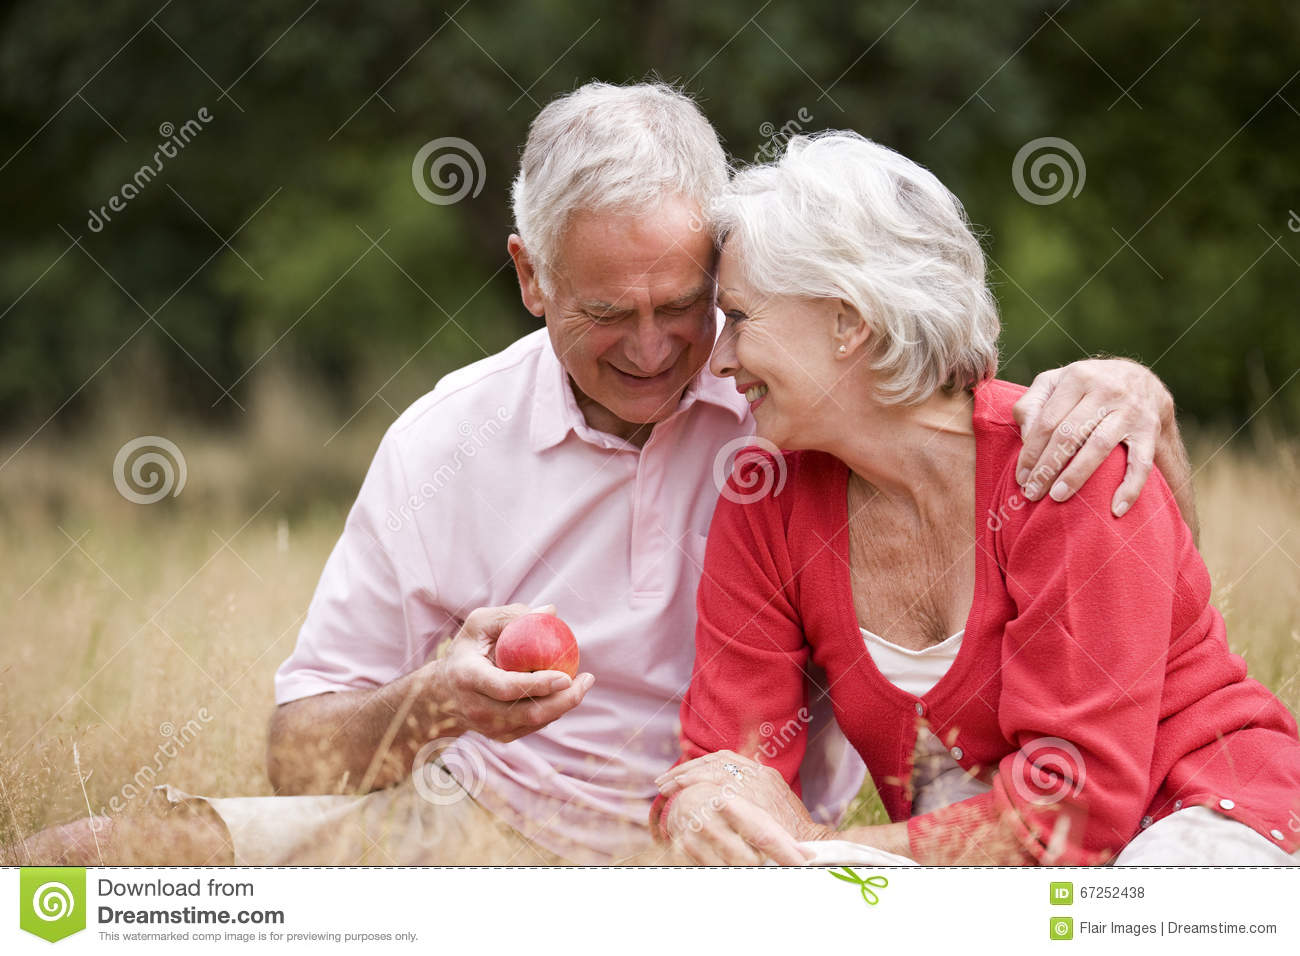 A senior couple sitting on the grass, man holding an apple